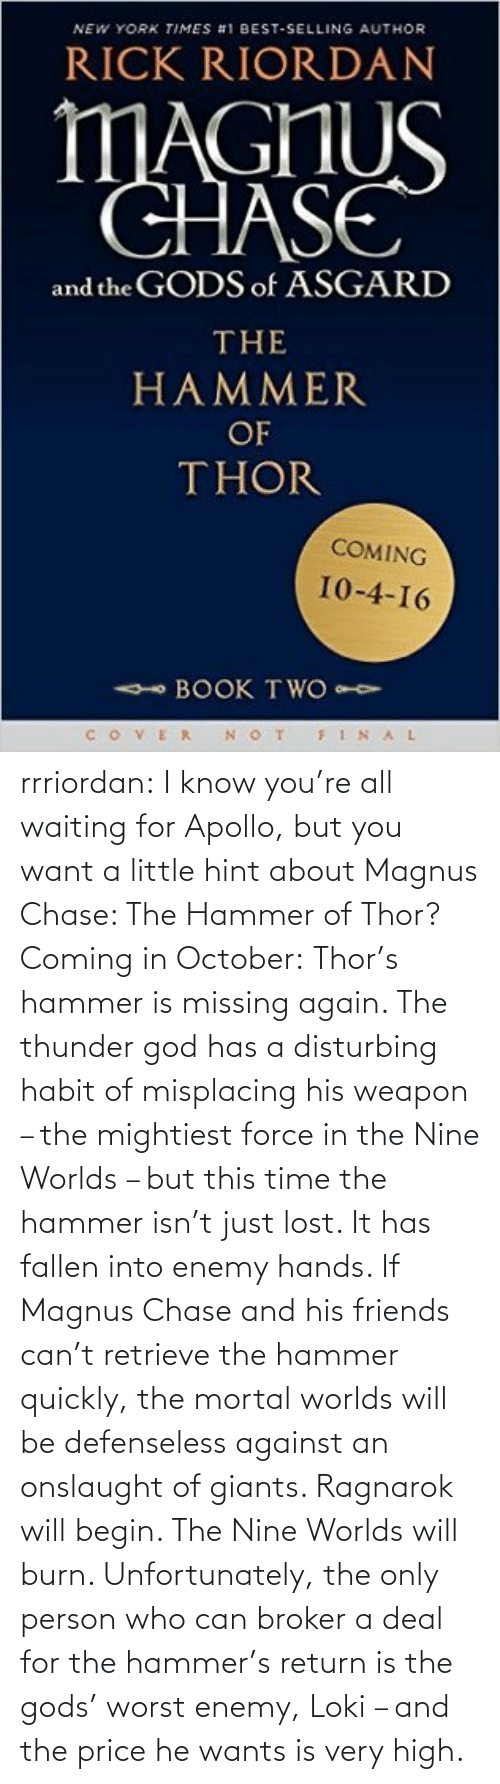 Very High: NEW YORK TIMES #1 BEST-SELLING AUTHOR  RICK RIORDAN  MAGHUS  CHASE  and the GODS of ASGARD  THE  HAMMER  OF  THOR  COMING  10-4-16  - BOOK TWO  VER N OT  FINAL rrriordan:  I know you're all waiting for Apollo, but you want a little hint about Magnus Chase: The Hammer of Thor? Coming in October:Thor's hammer is missing again. The thunder god has a disturbing habit of misplacing his weapon – the mightiest force in the Nine Worlds – but this time the hammer isn't just lost. It has fallen into enemy hands. If Magnus Chase and his friends can't retrieve the hammer quickly, the mortal worlds will be defenseless against an onslaught of giants. Ragnarok will begin. The Nine Worlds will burn. Unfortunately, the only person who can broker a deal for the hammer's return is the gods' worst enemy, Loki – and the price he wants is very high.